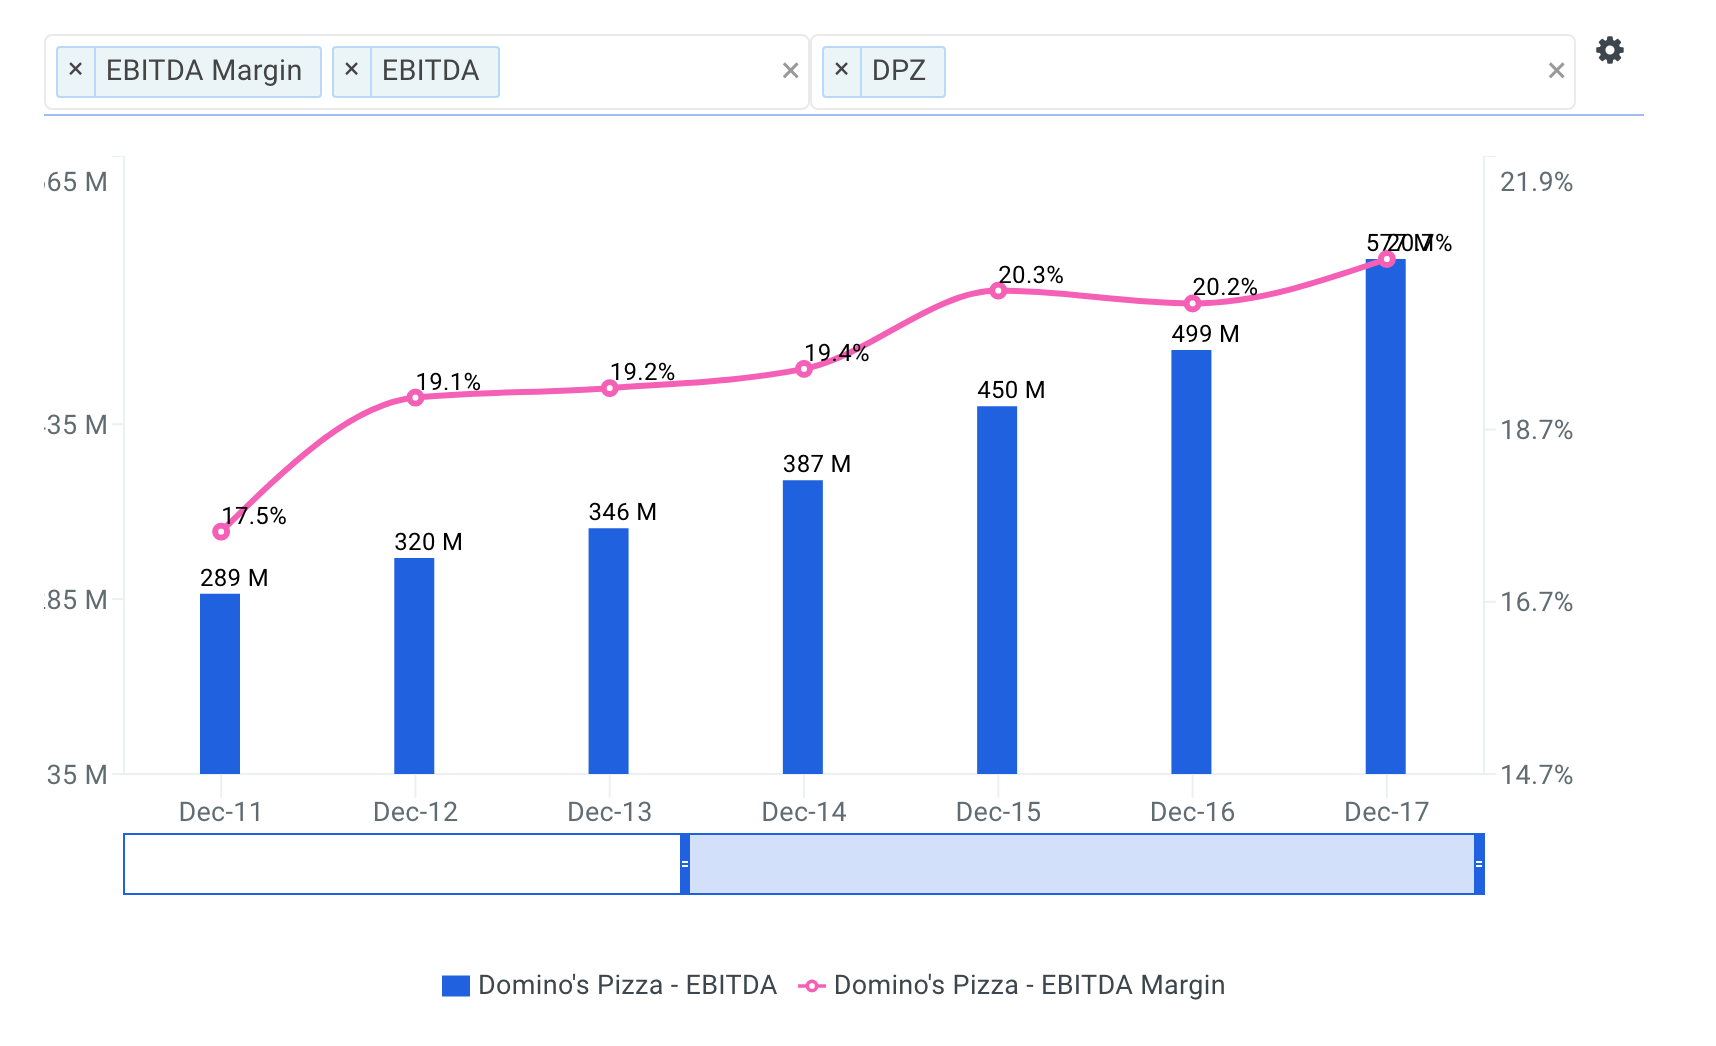 Domino's Pizza Historical and Projected EBITDA Margin Chart